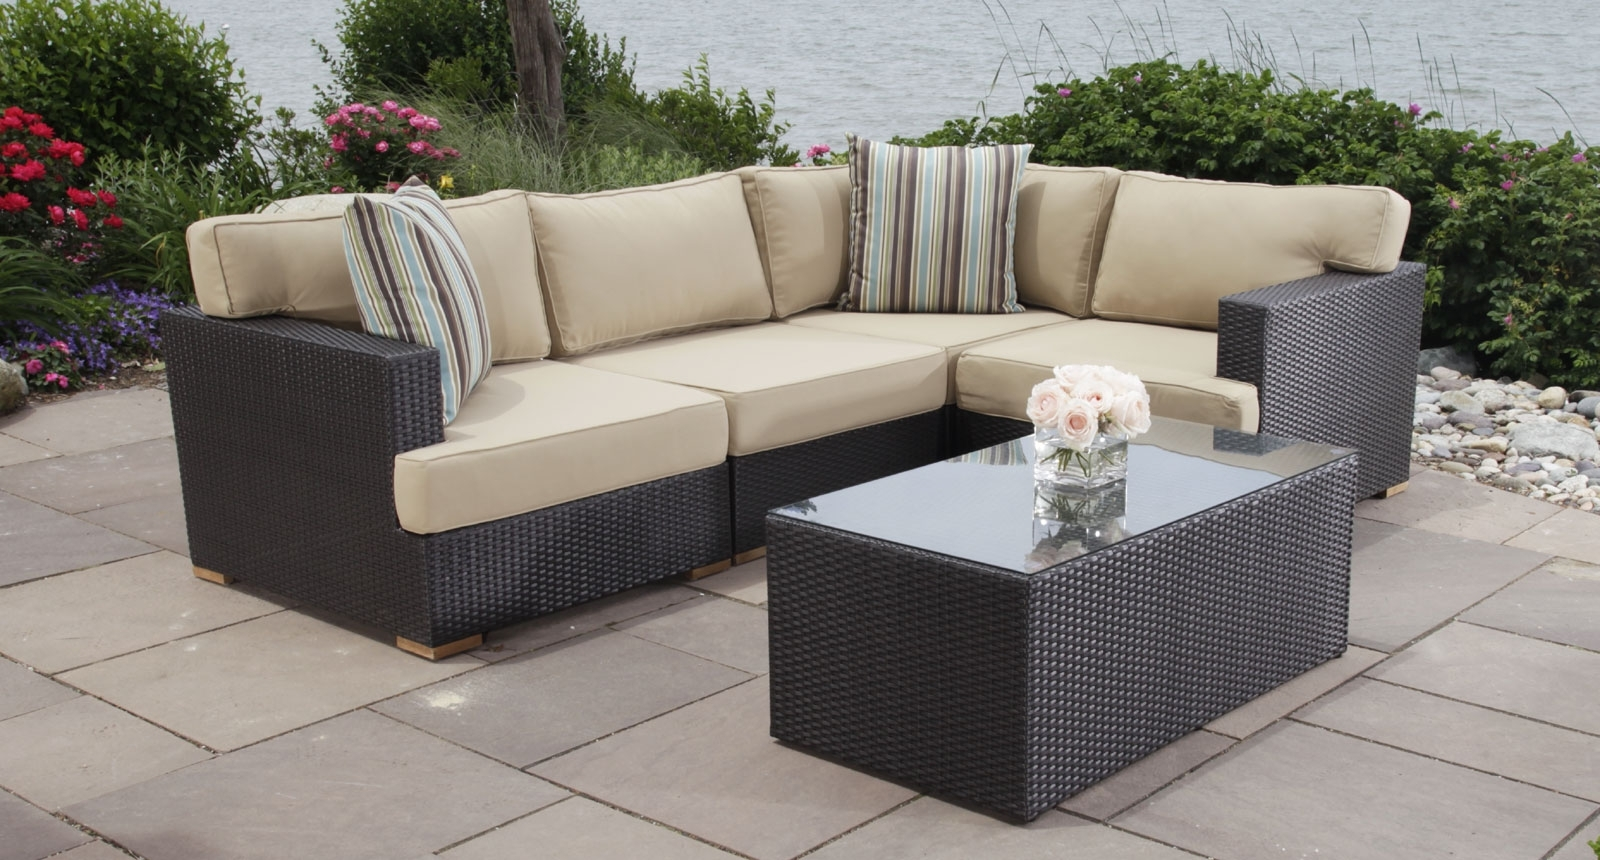 Outdoor Sectional Cover Amazon Waterproof Patio Furniture Covers With Newest Sectional Sofas At Amazon (View 16 of 20)